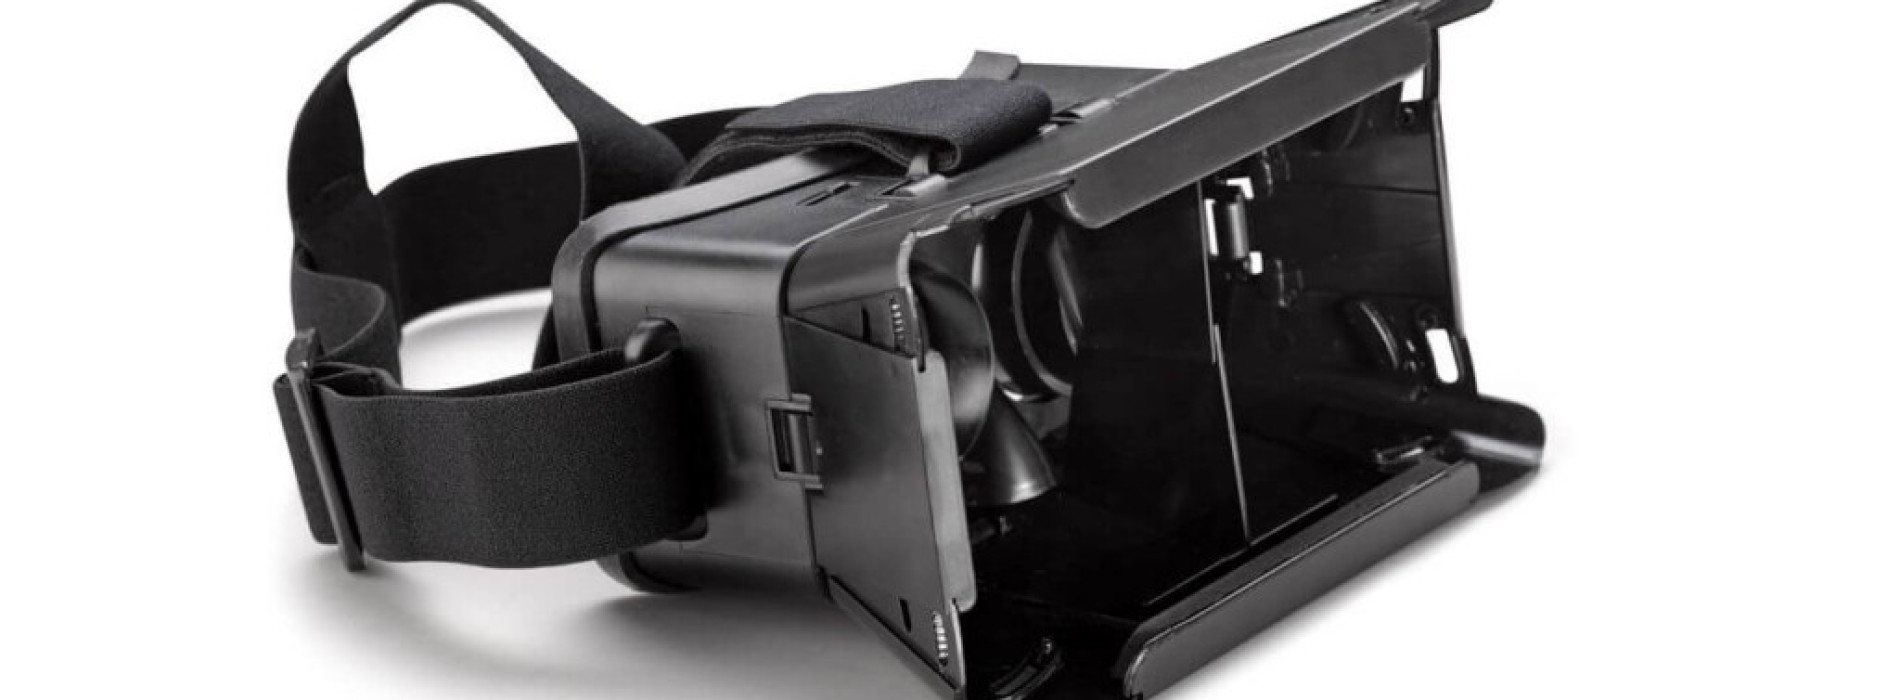 Gafas de realidad virtual Low cost